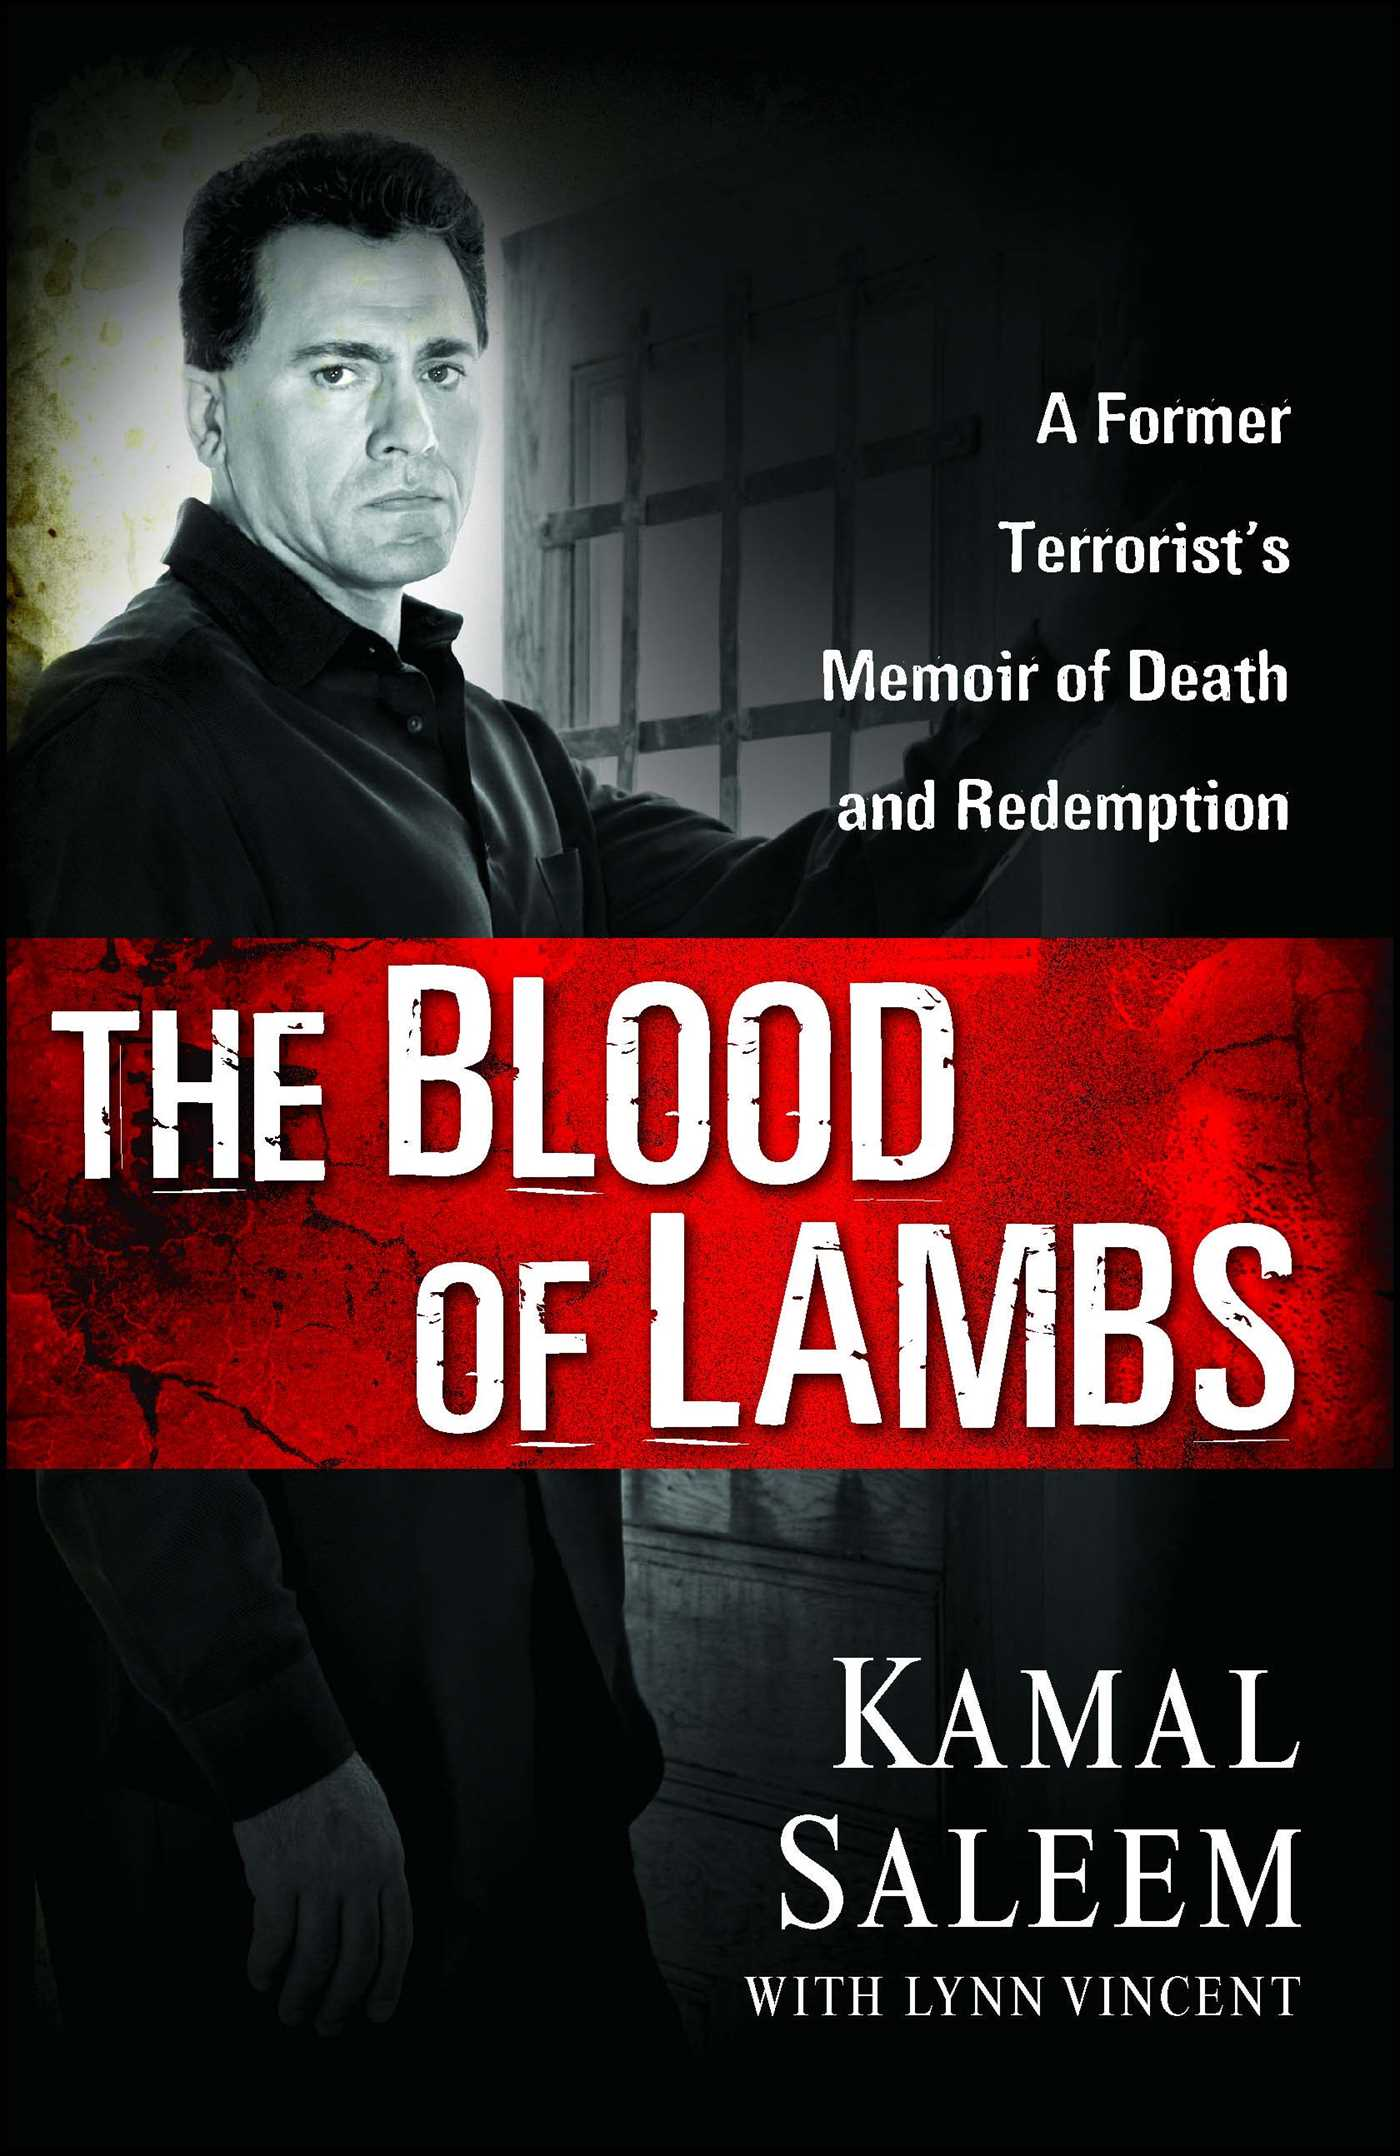 The blood of lambs 9781501174292 hr